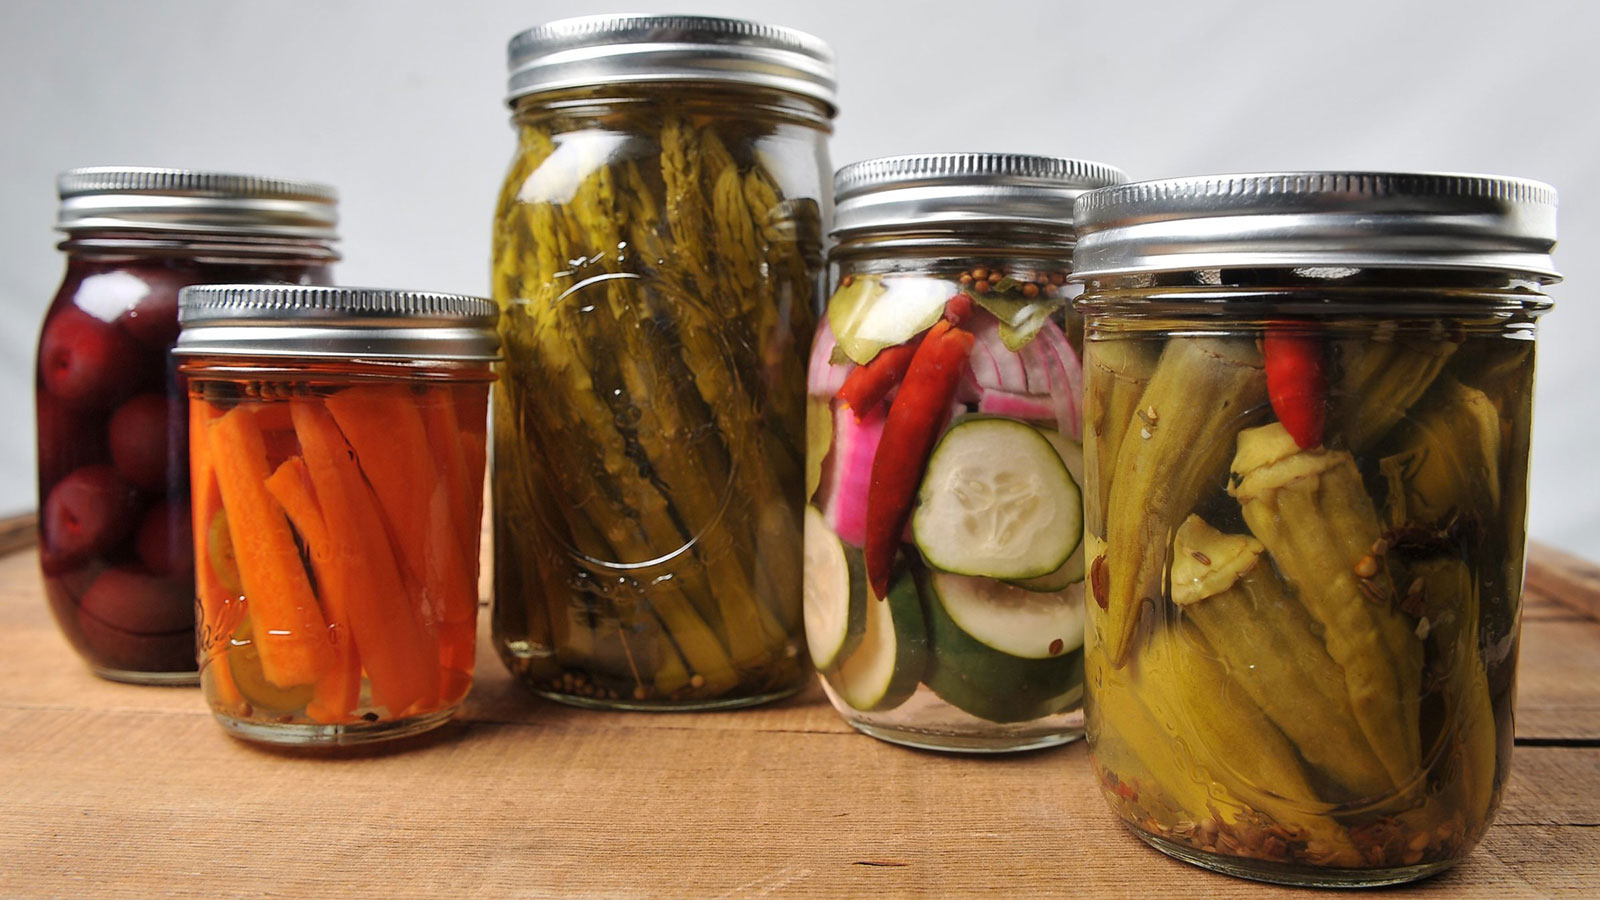 pickle-jars-reason-start-pickling-FT-BLOG0517.jpg